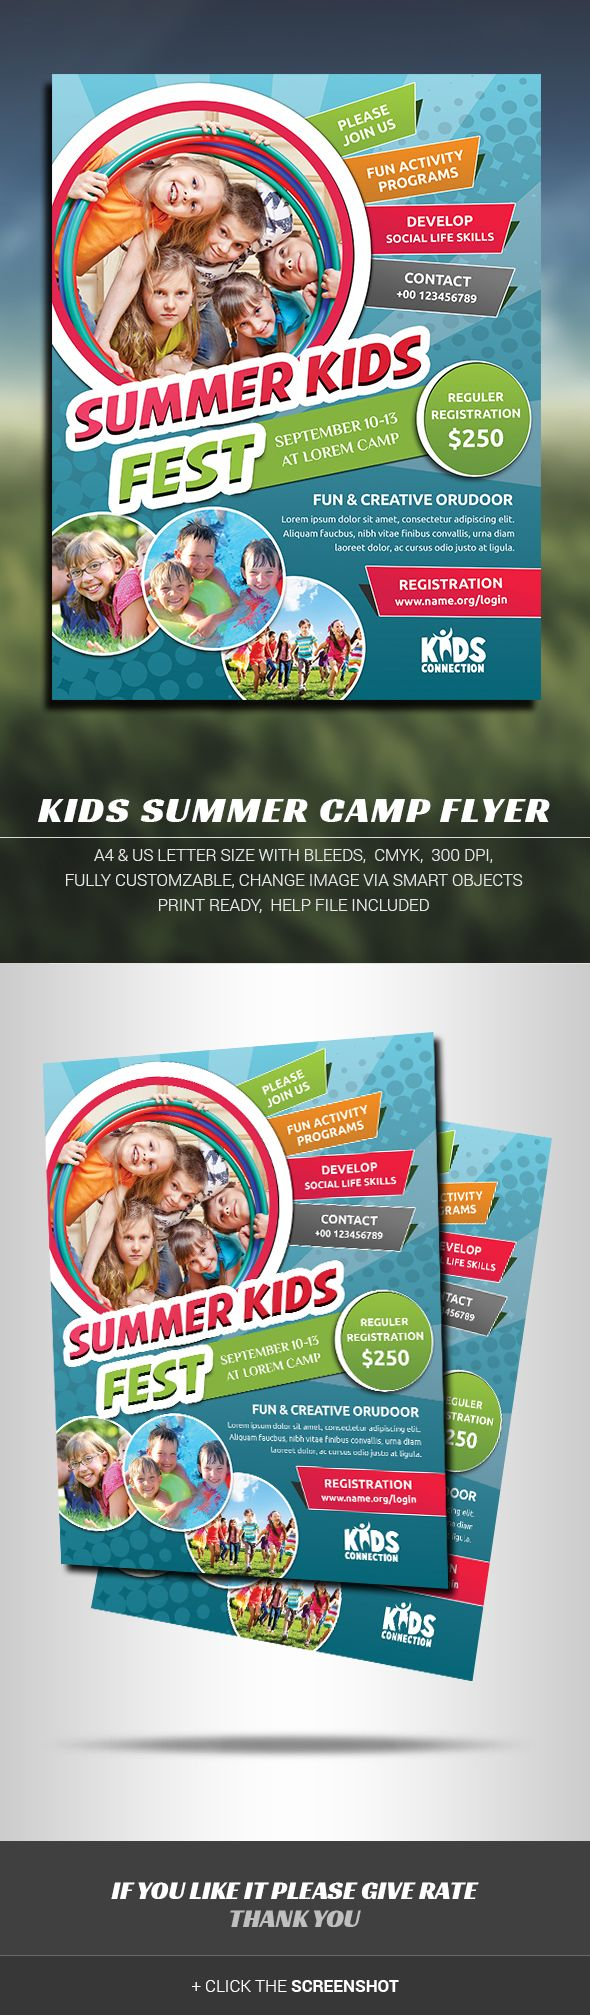 Kids Summer Camp Flyer on Behance